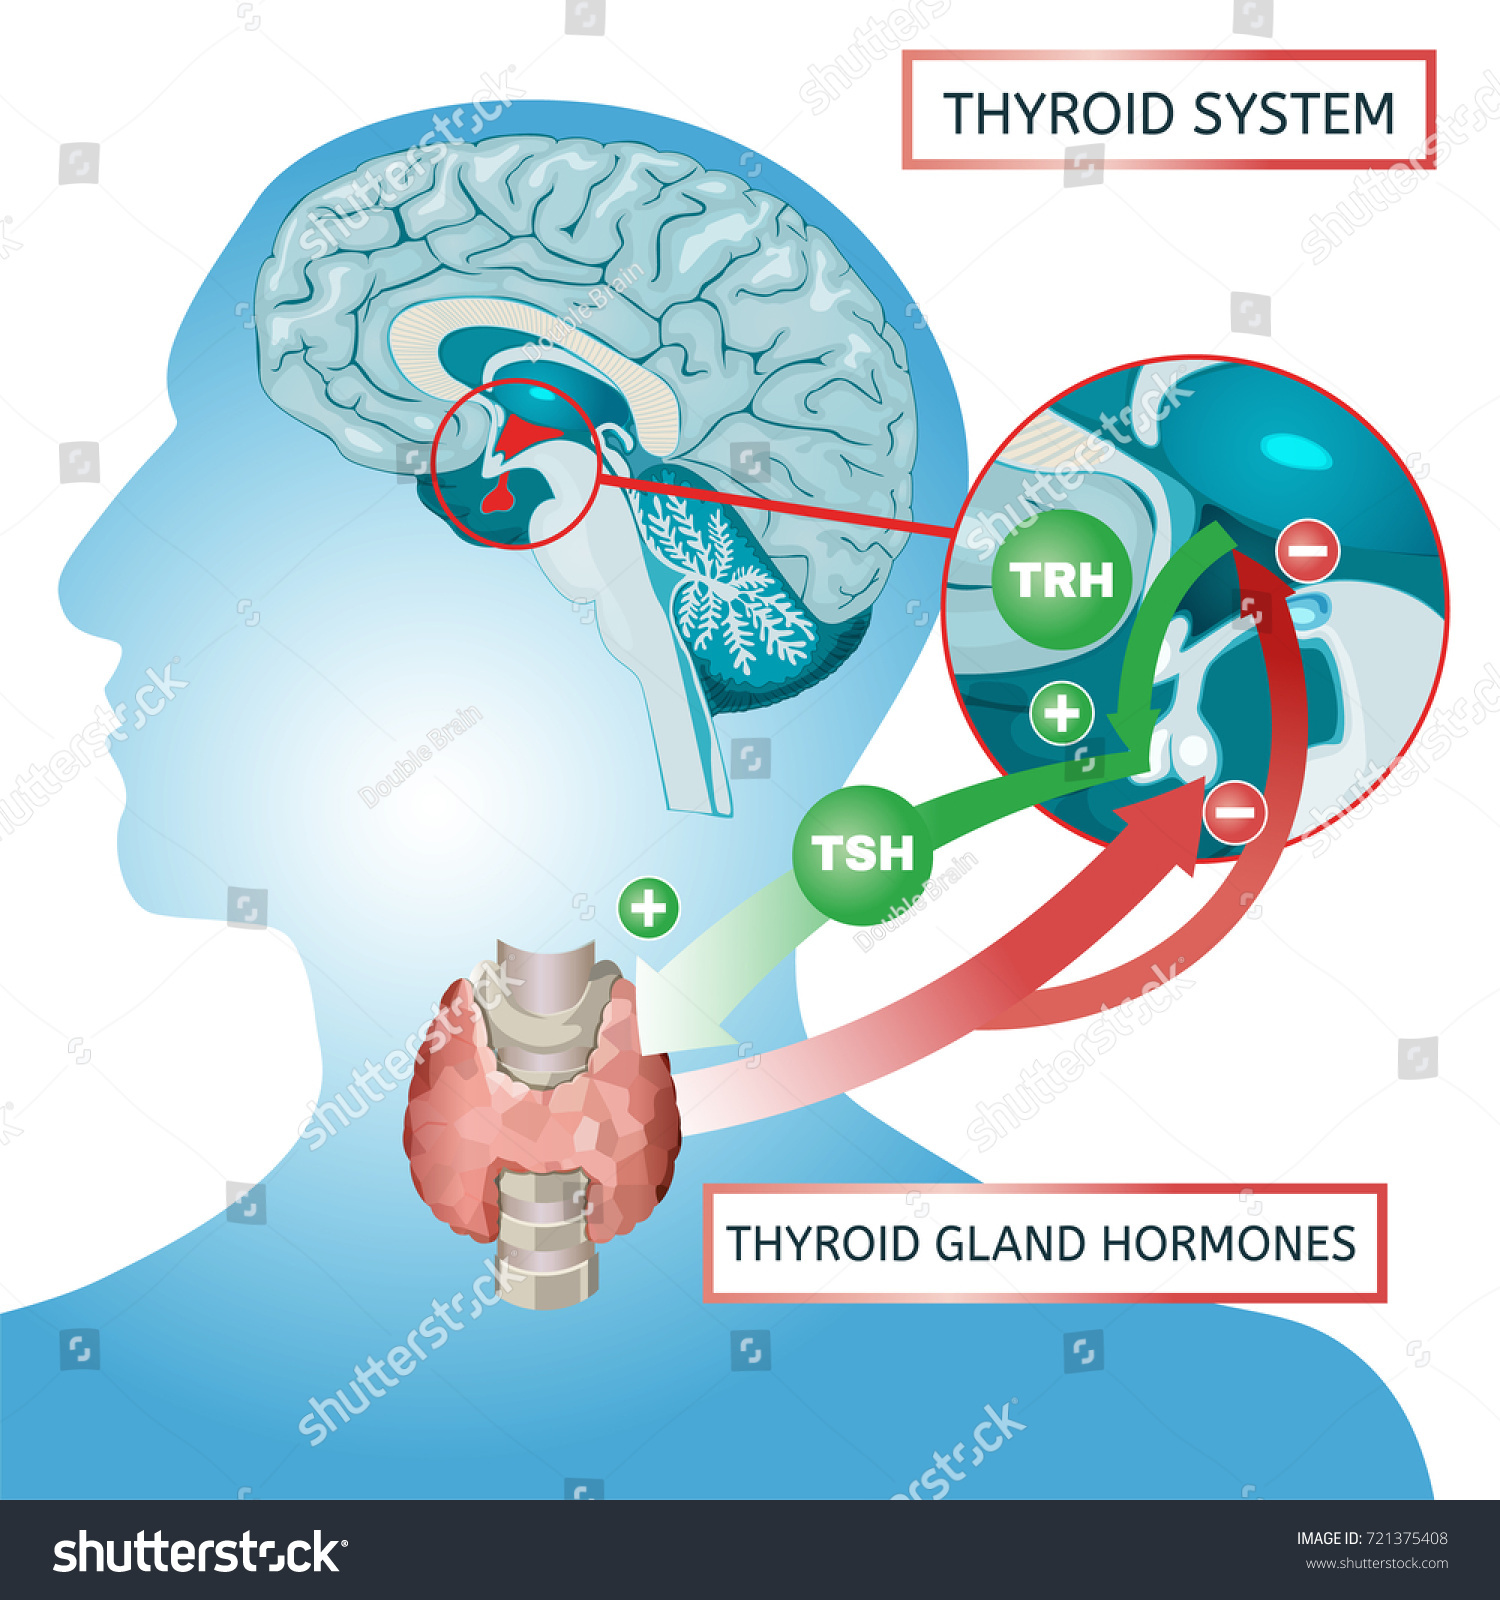 Thyroid System Vector Illustration Medical Anatomy Stock Vector ...